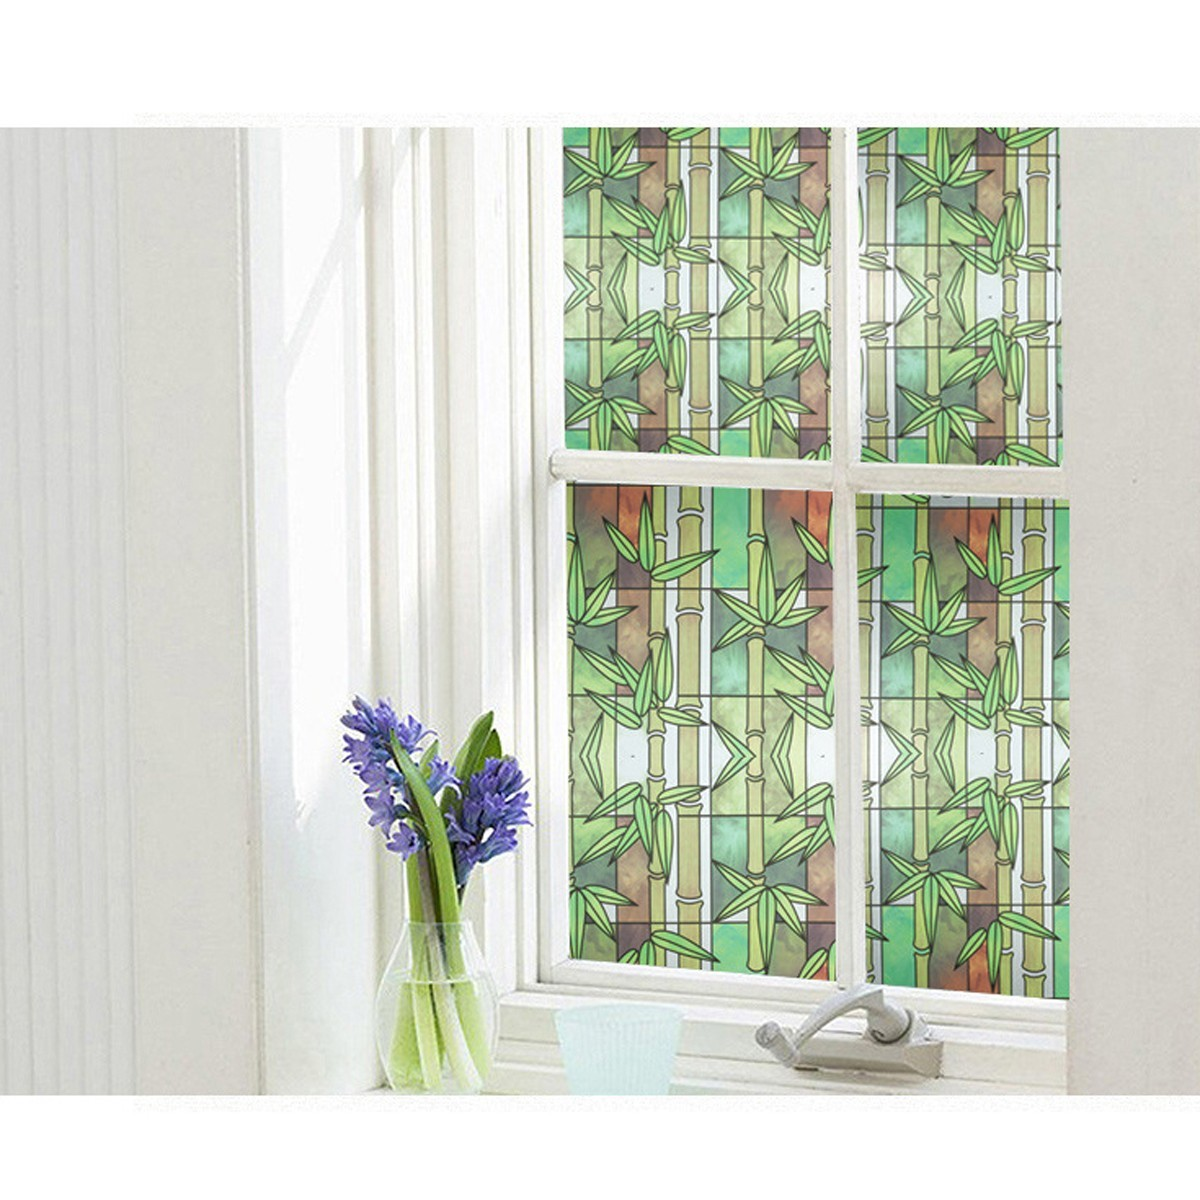 45*200cm Bamboo Window Film Privacy Stained Glass Film ...